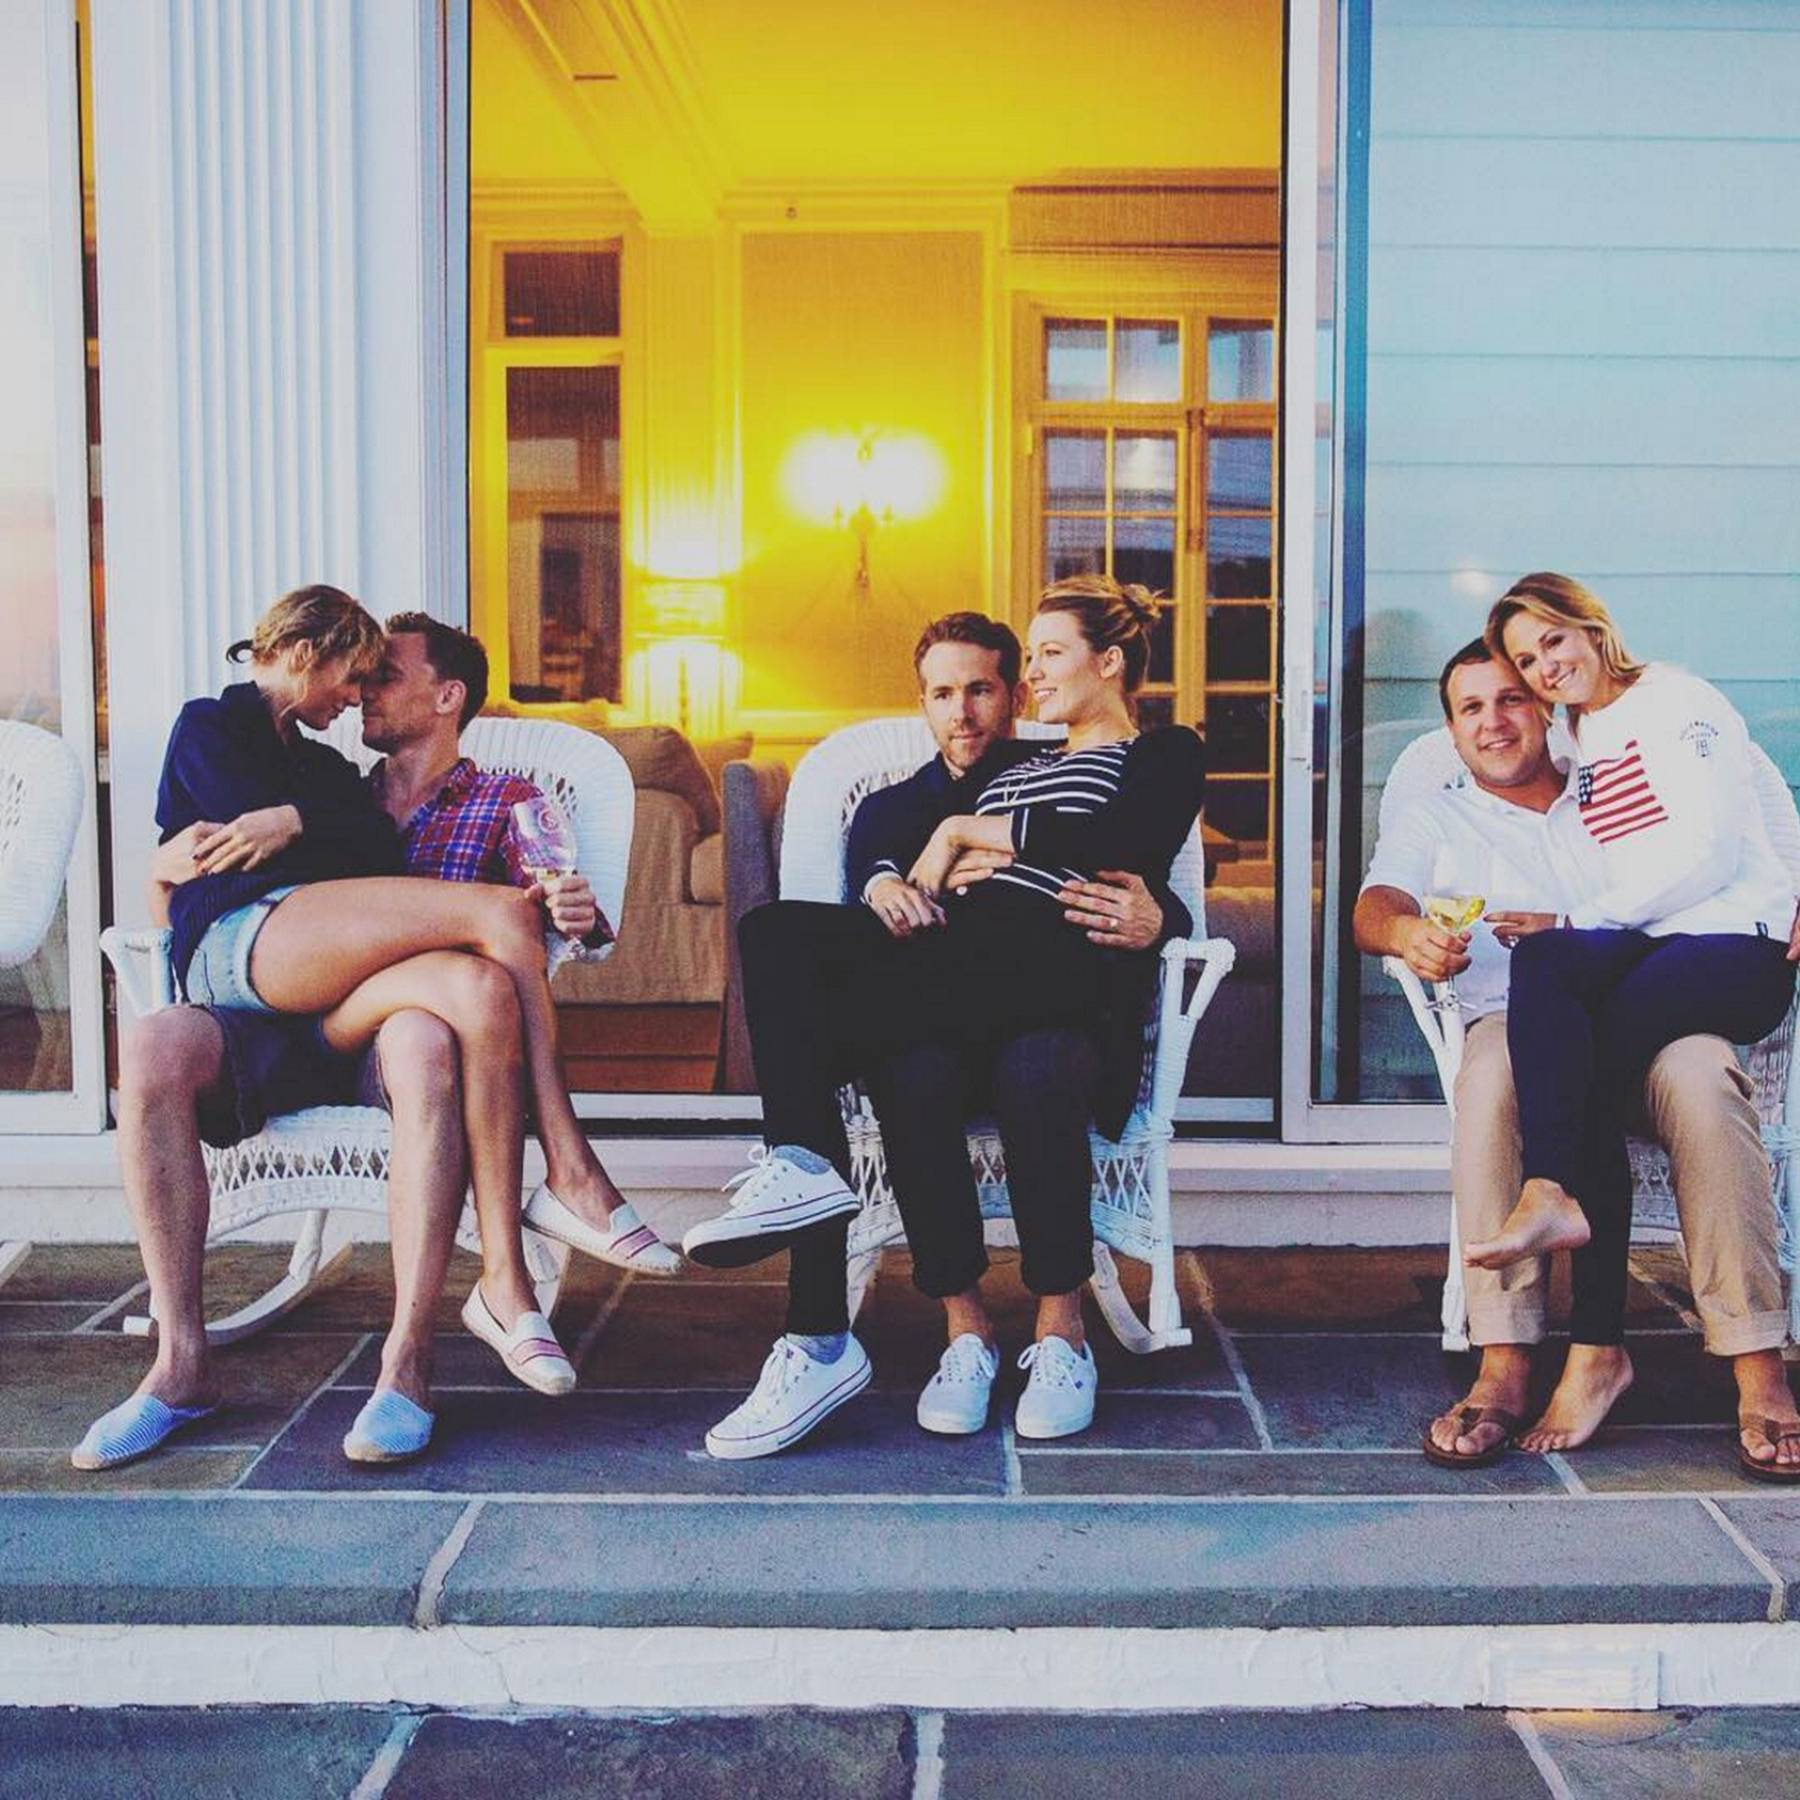 Taylor Swift & Tom Hiddleston Dating: Pictures & News